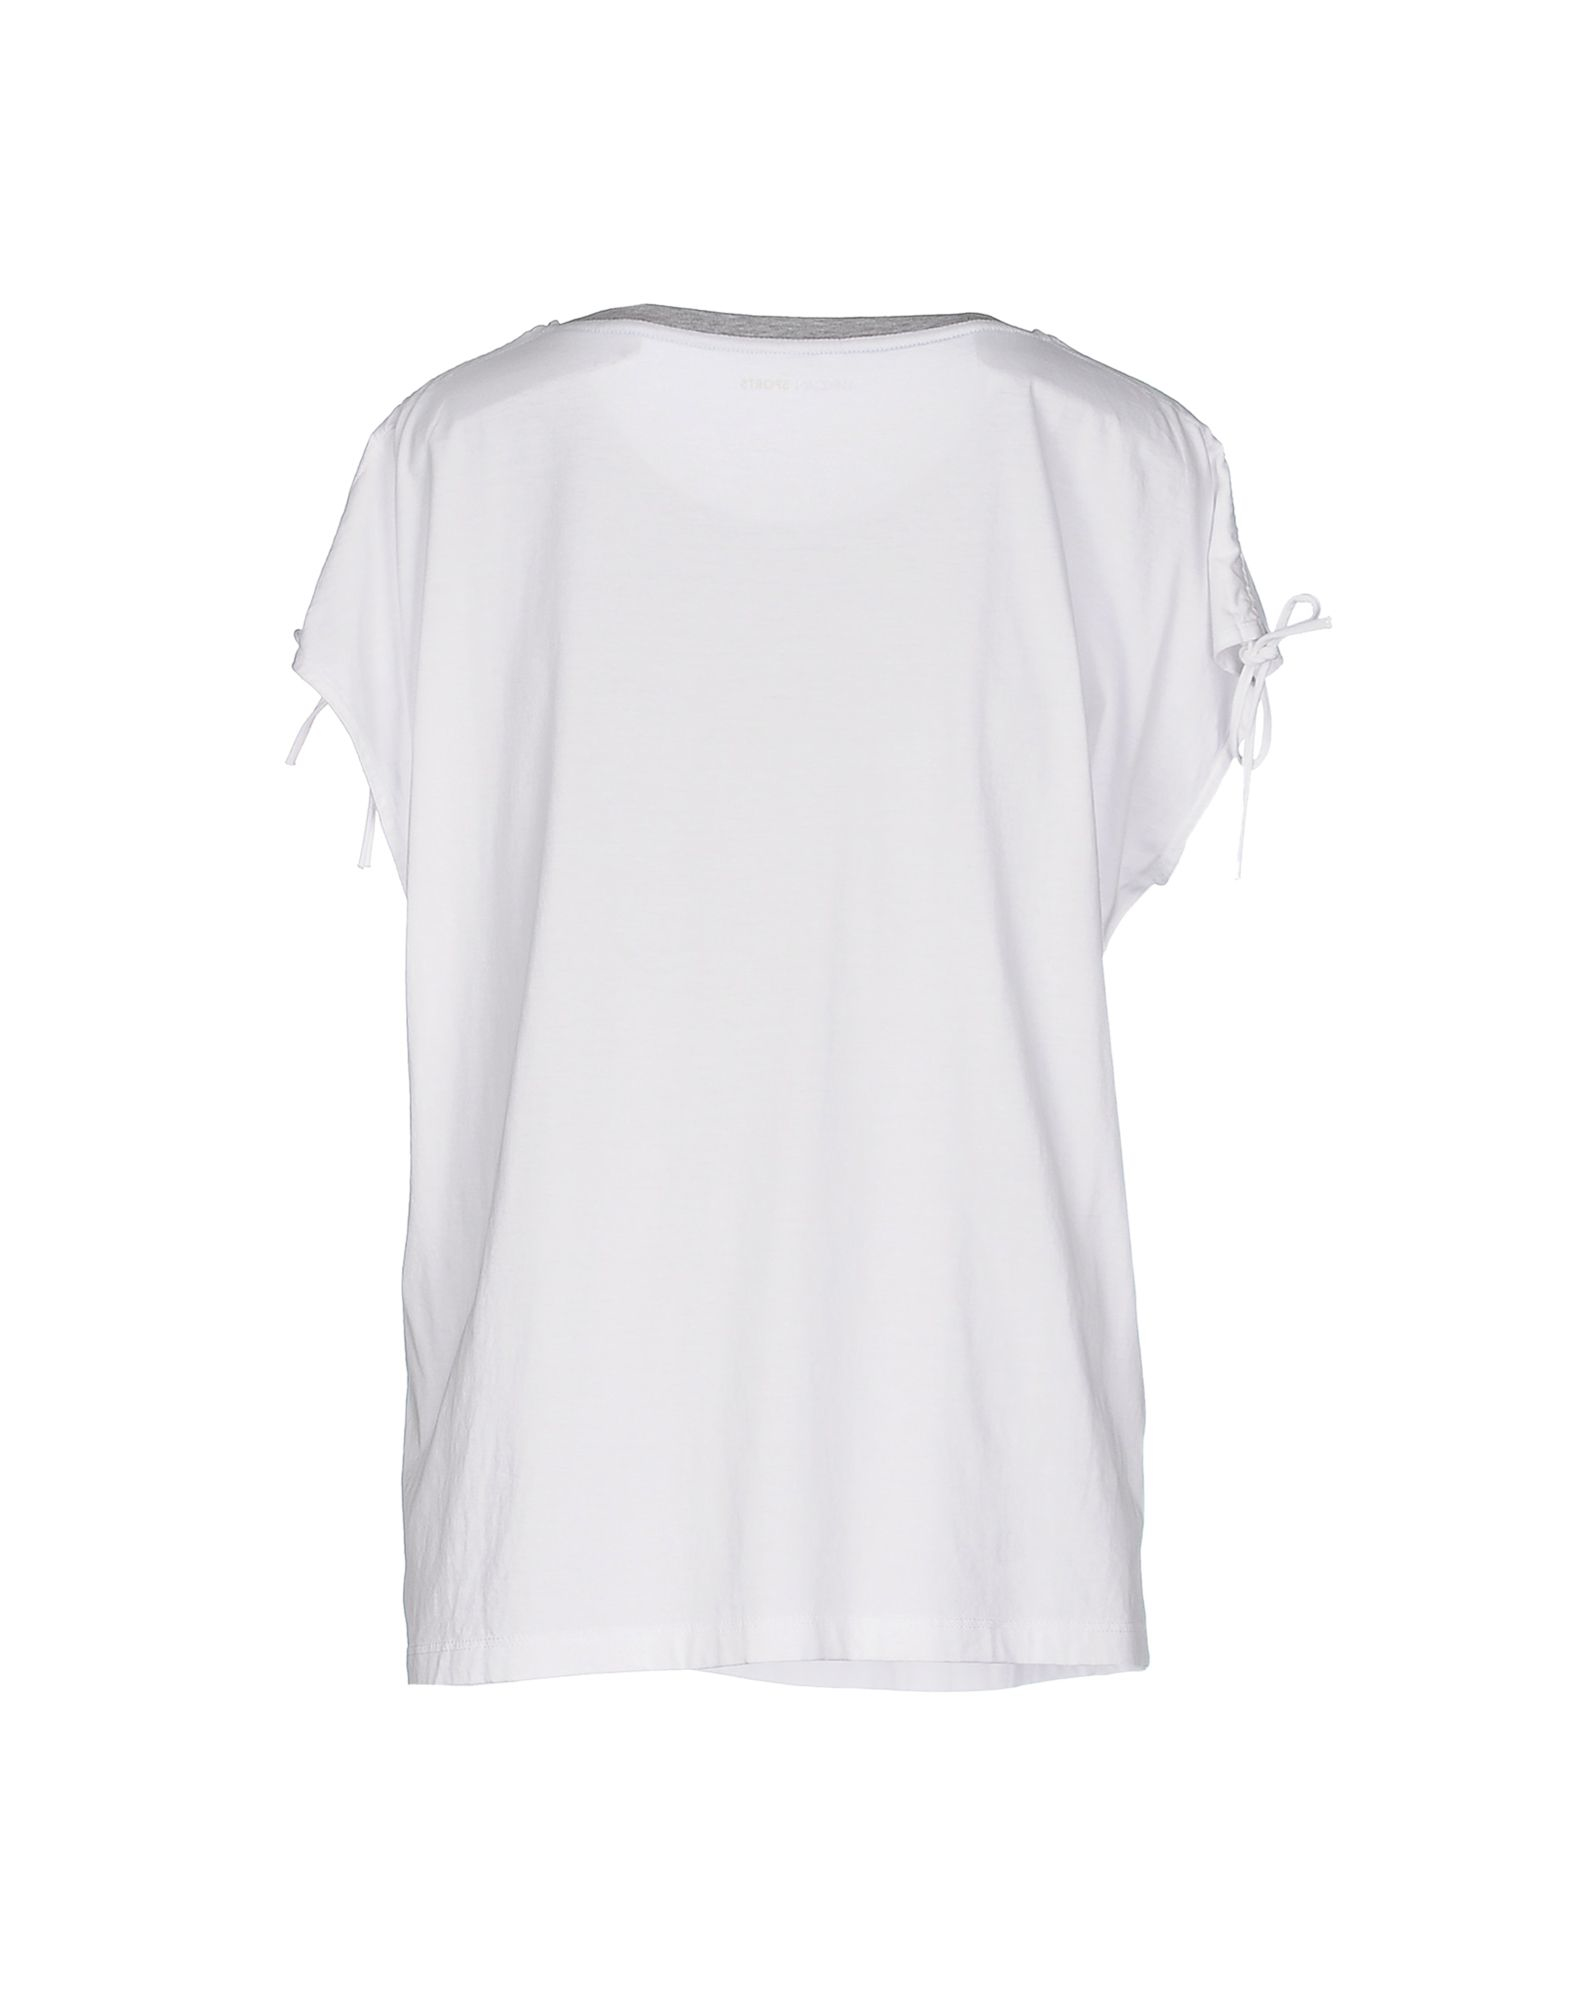 marc cain t shirt in white lyst. Black Bedroom Furniture Sets. Home Design Ideas